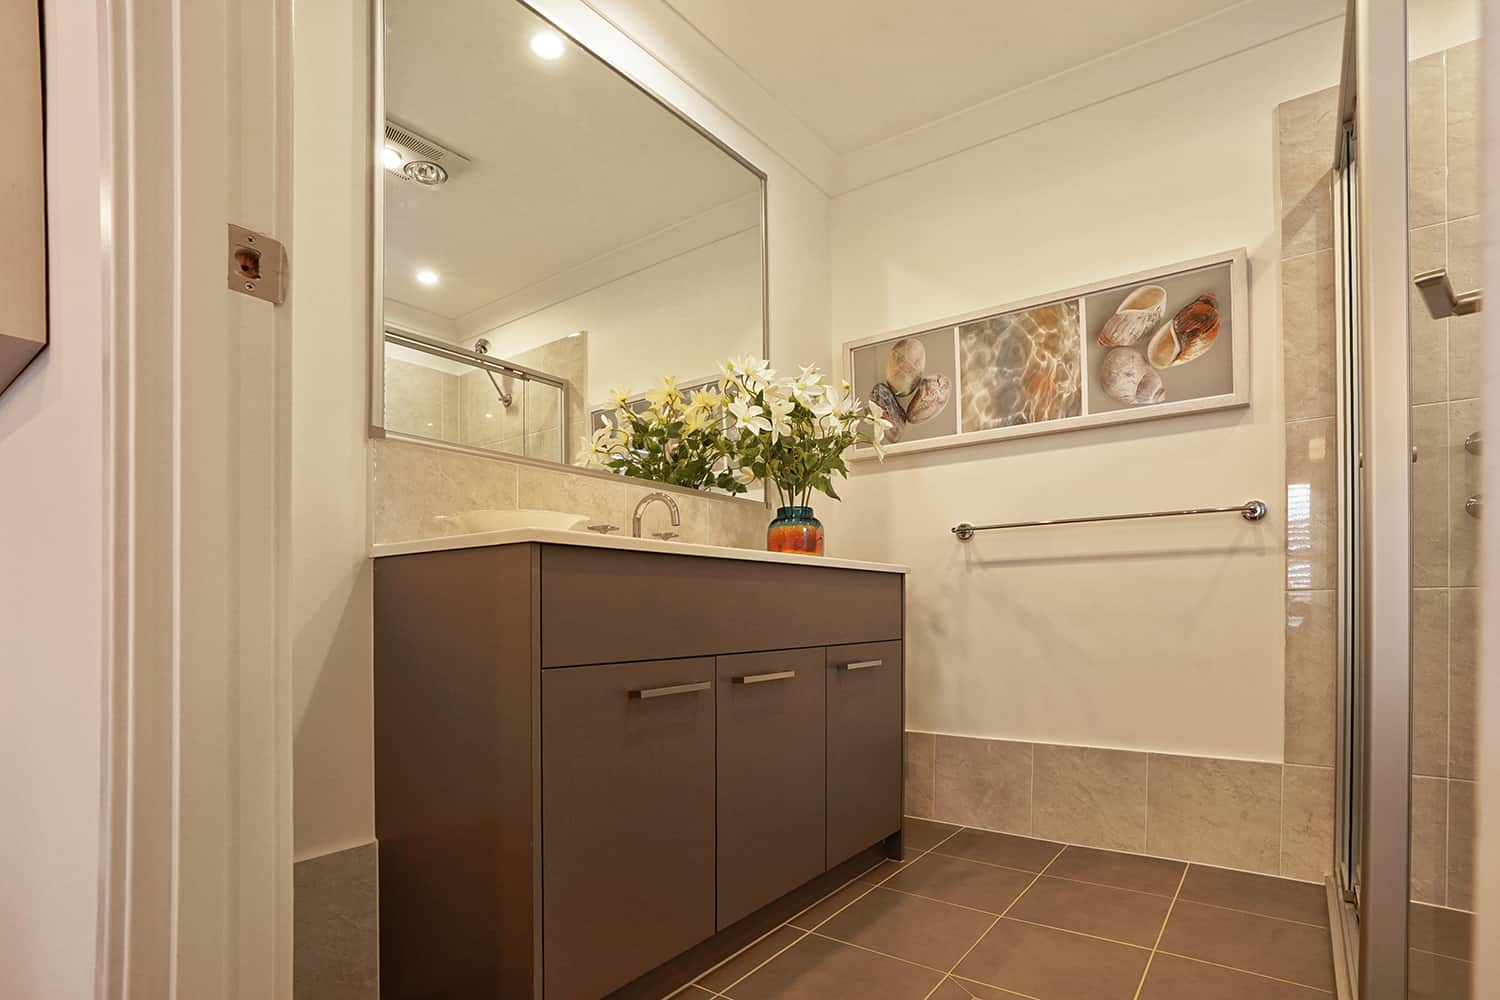 Harmony Four 23 - Ensuite image. On display at Housing World Nowra